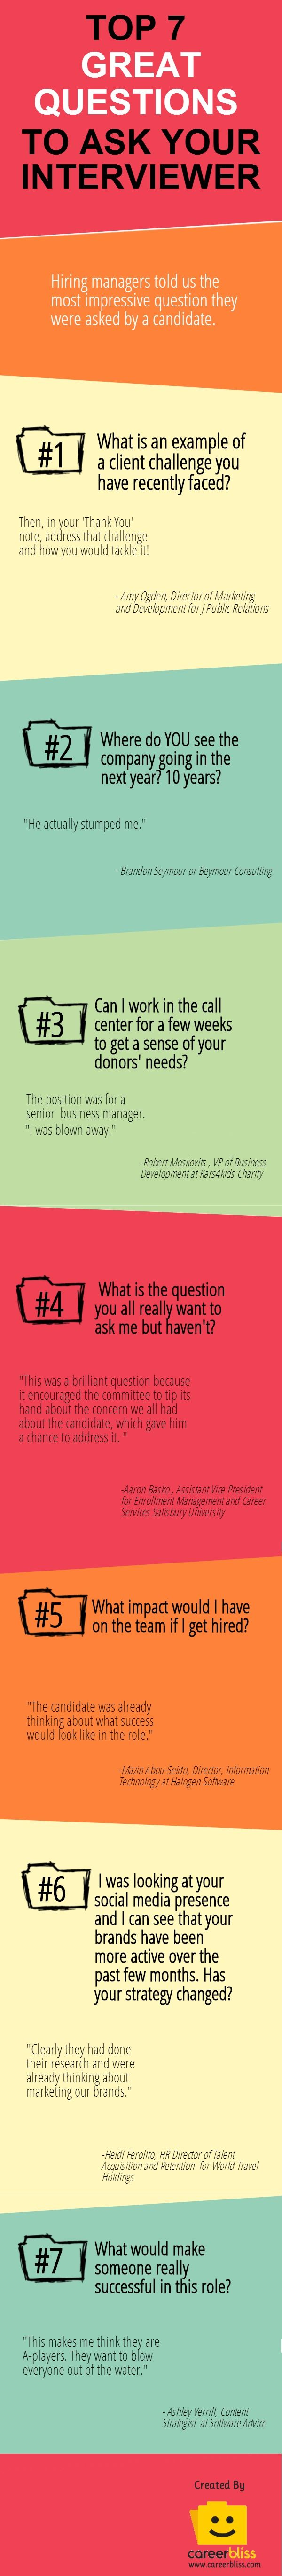 Some Great Questions Asked To The Job Interviewer